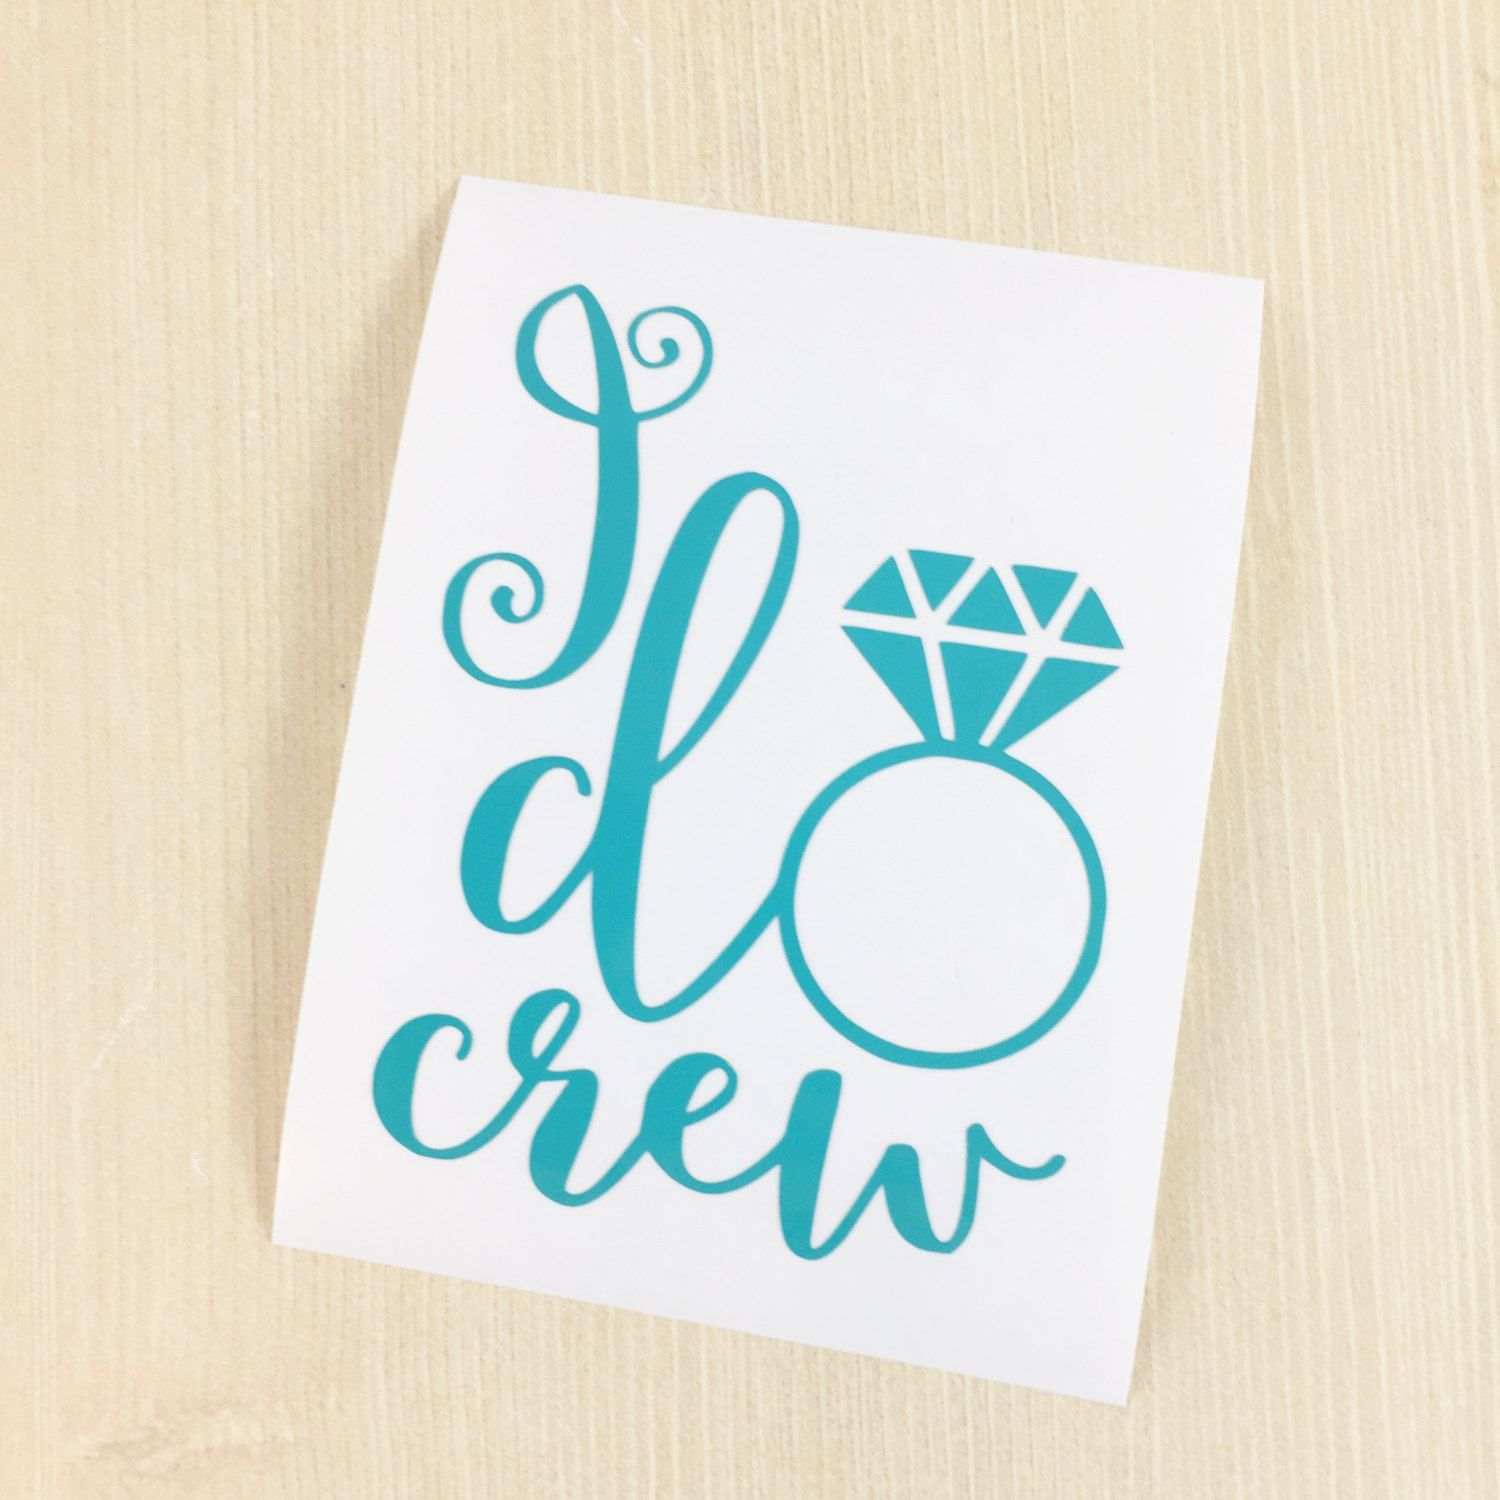 I Do Crew Decal Wedding Cup Decal DIY Bachelorette Bridal - How to make vinyl decals for cups